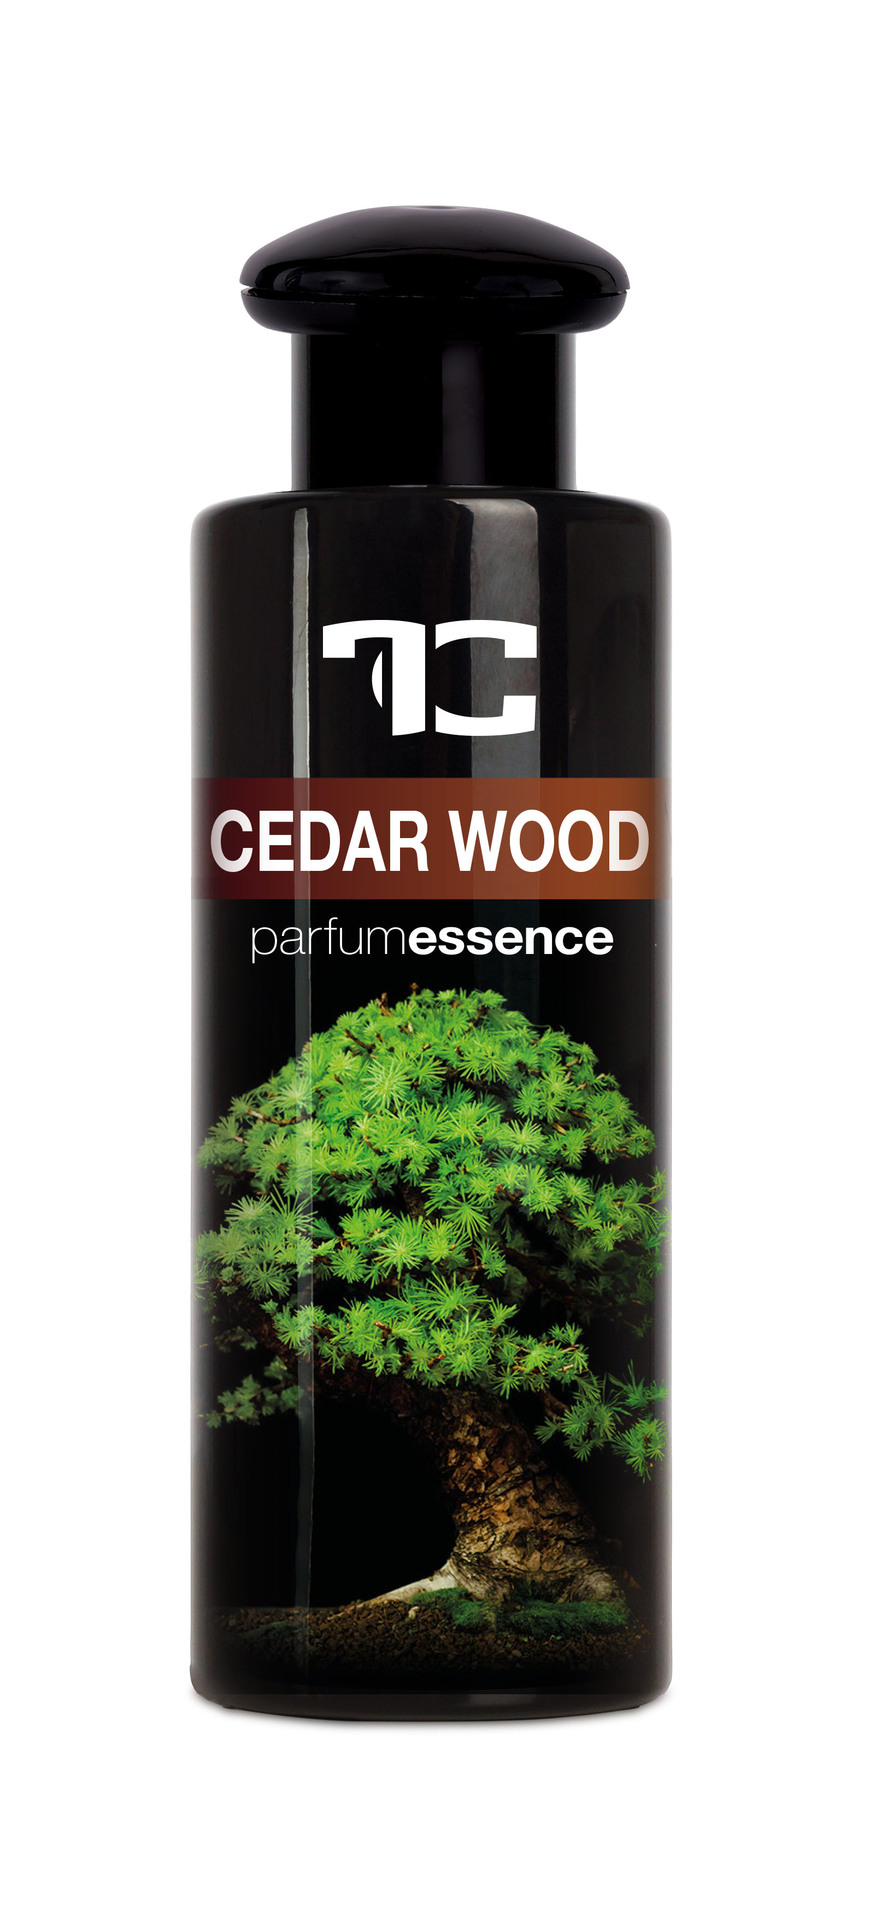 https://dedra.blob.core.windows.net/cms/ContentItems/2861_parfum-essence-cedar-wood-parfemova-esence/images/fc0388-cedar-wood-parfum-essence-black.jpg